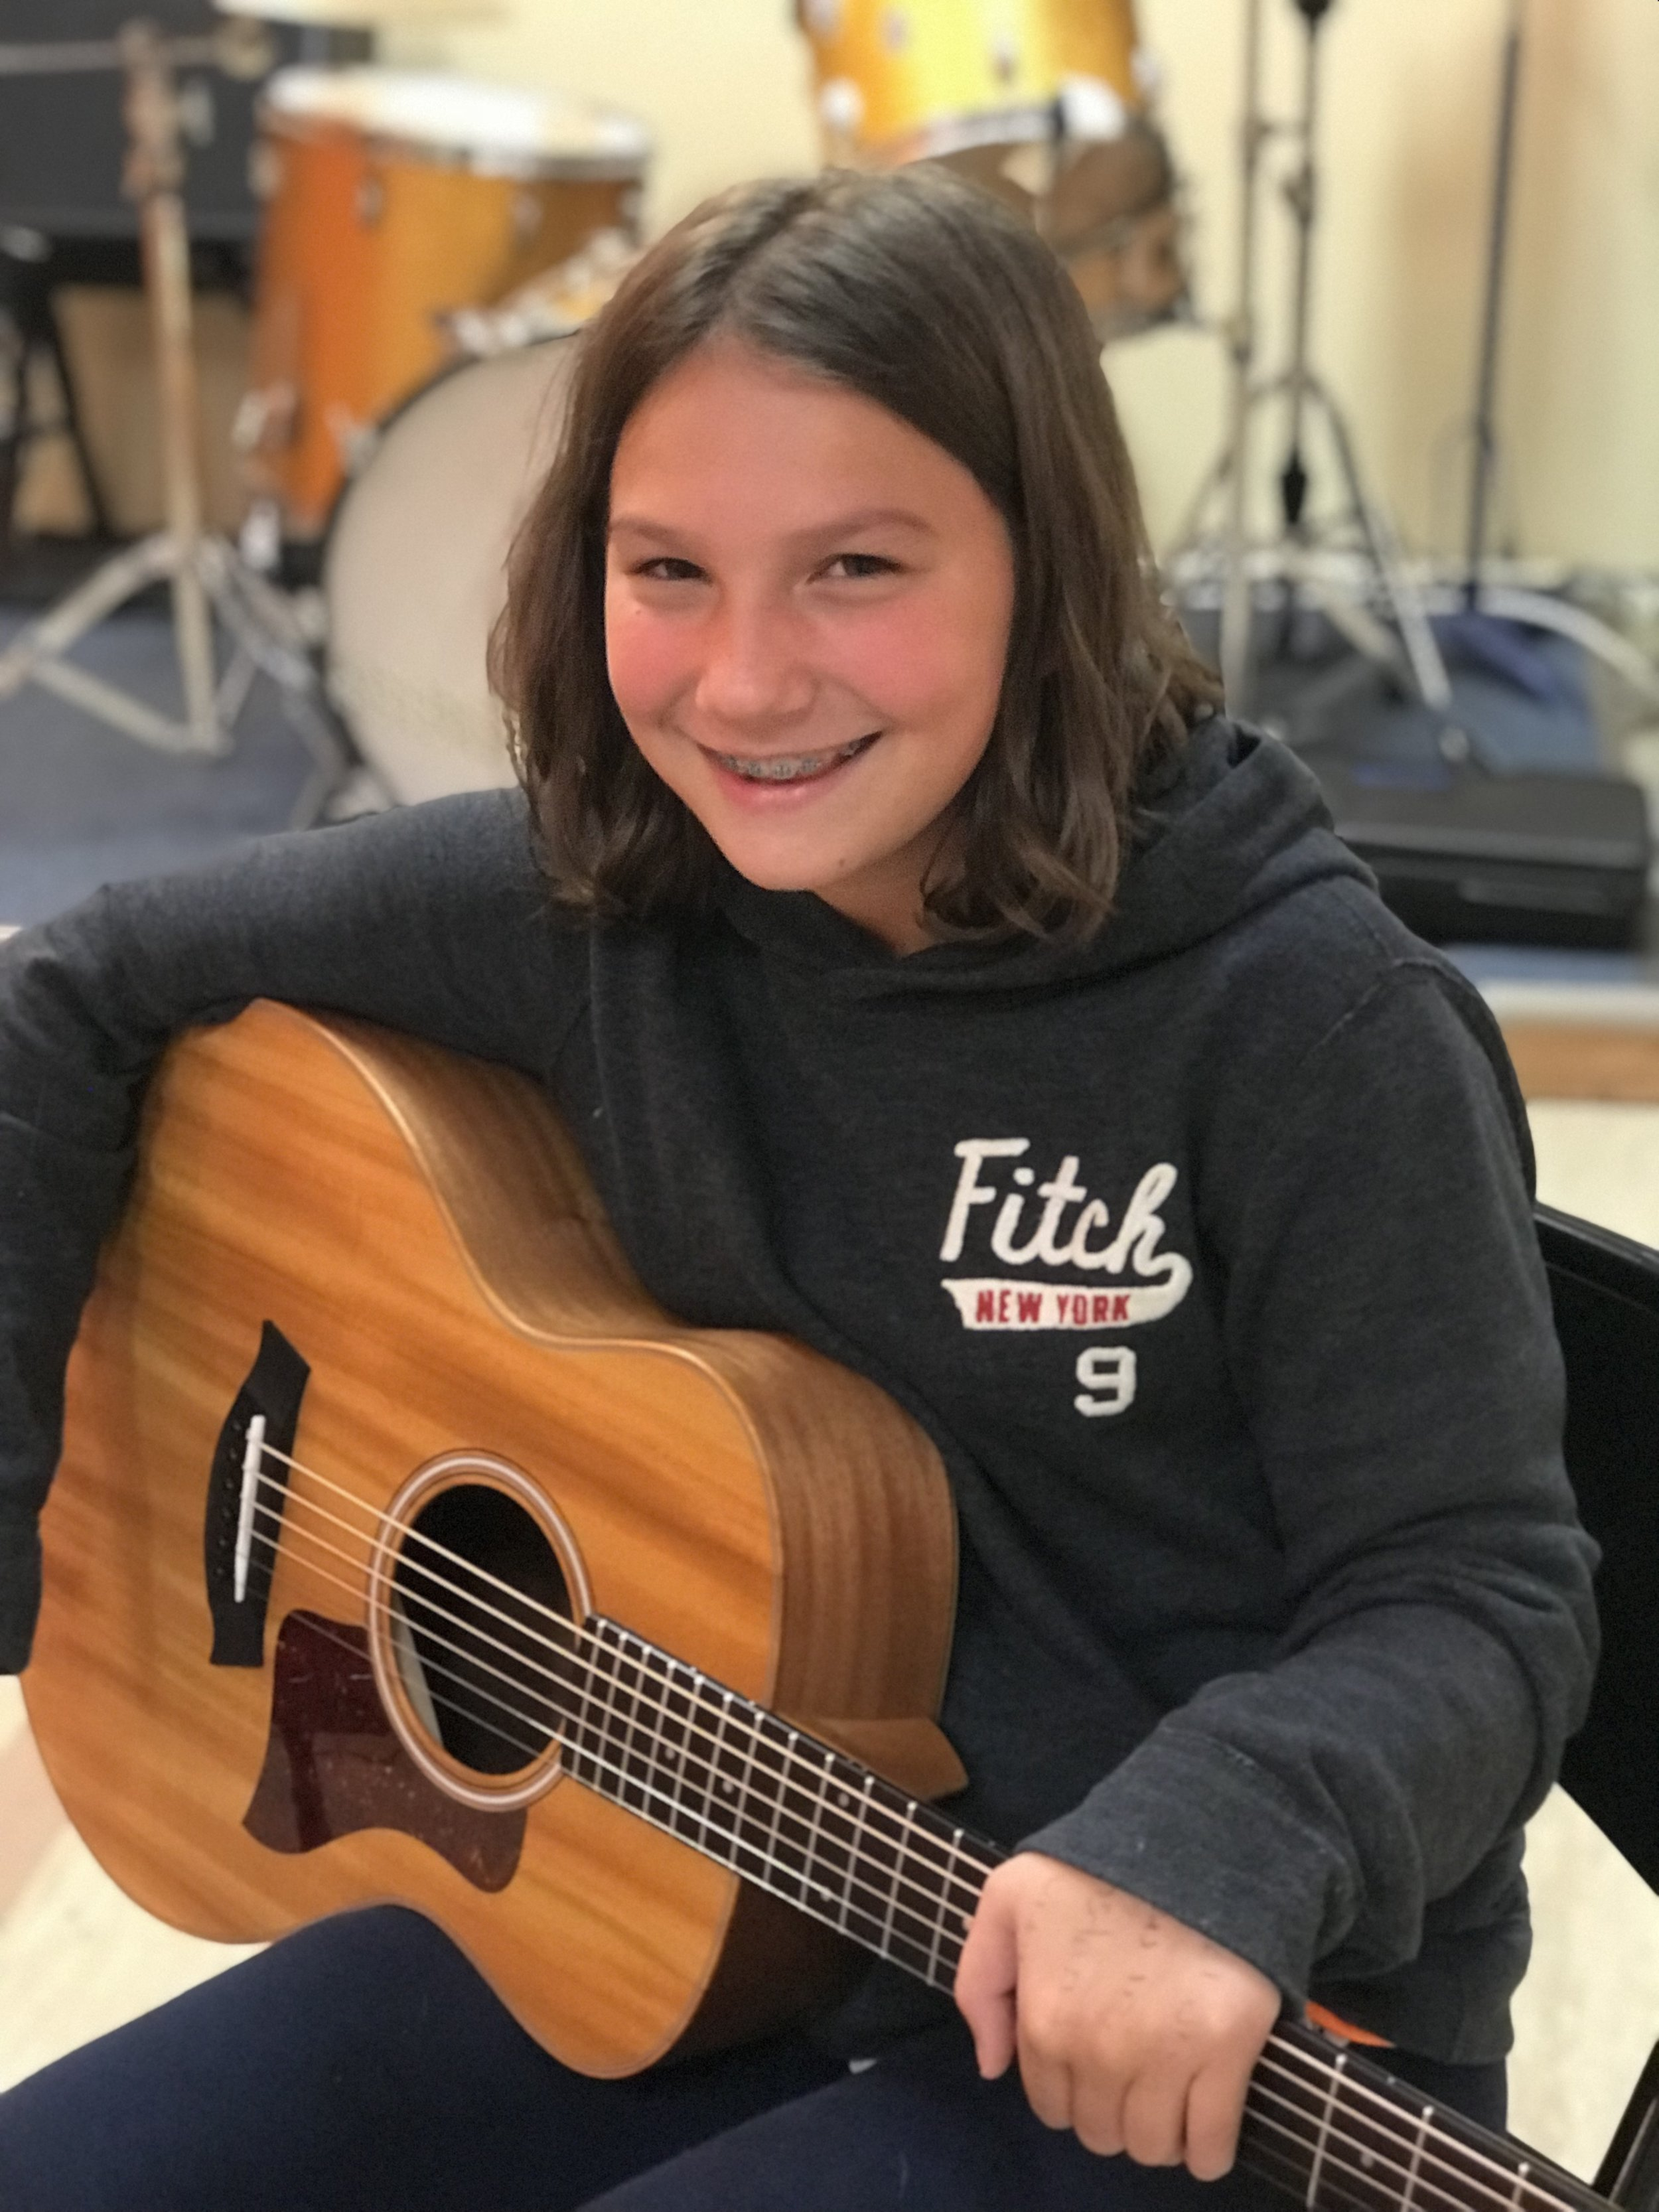 Huge Deal on ALL Music Lessons! - USE THE CODE: HOLIDAY2017 (when you check out)Save $70 when you sign-up today!We offer lessons in: Voice, Piano, Guitar, Ukulele, Drums, Production, Recording, Flute, Clarinet, Saxophone, Trumpet, Trombone, Violin, Viola, Cello and Bass.*for new students only. Not to be combined with any other offers. All Rights Reserved by The Modern Music Academy LLC